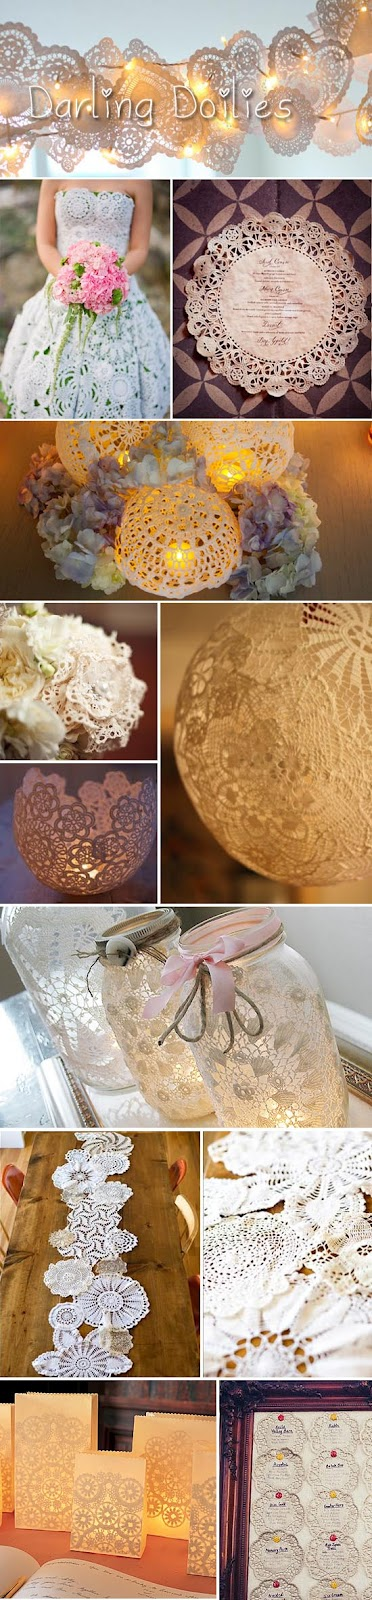 Things We Love Darling Doily Wedding Decor